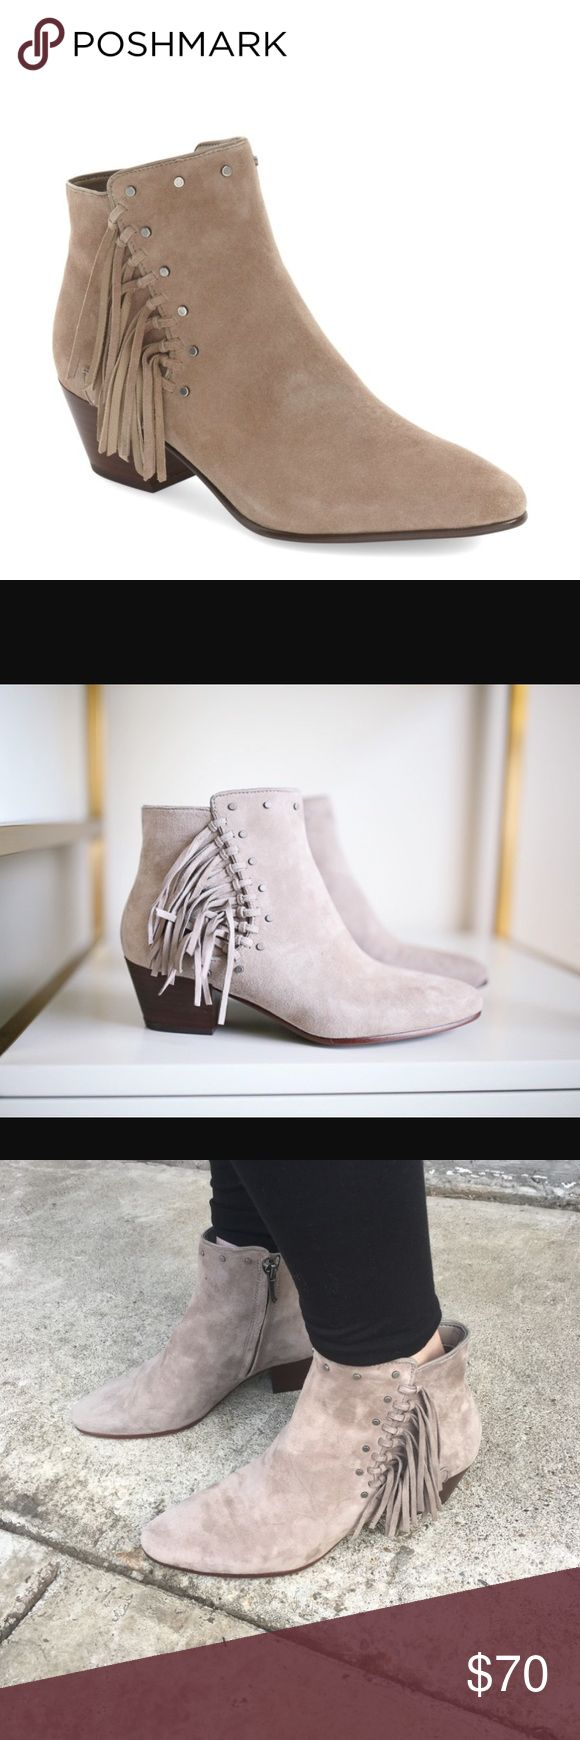 """Sam Edelman 'Rudie' Fringe Bootie Worn a couple of times! Please Note: These are a size 7 WIDE! Only flaw is pictured (2 small pink marks on the inside of the left shoe) Other than that these are in great condition! Slip-knotted fringe and antiqued flathead studs trace the edge of a wardrobe-staple suede bootie, adding trend-right boho embellishment—with an edgy twist—to the classic almond-toe silhouette. 2"""" heel  4 1/2"""" bootie shaft. Side zip closure. Sam Edelman Shoes Ankle Boots & Booties"""